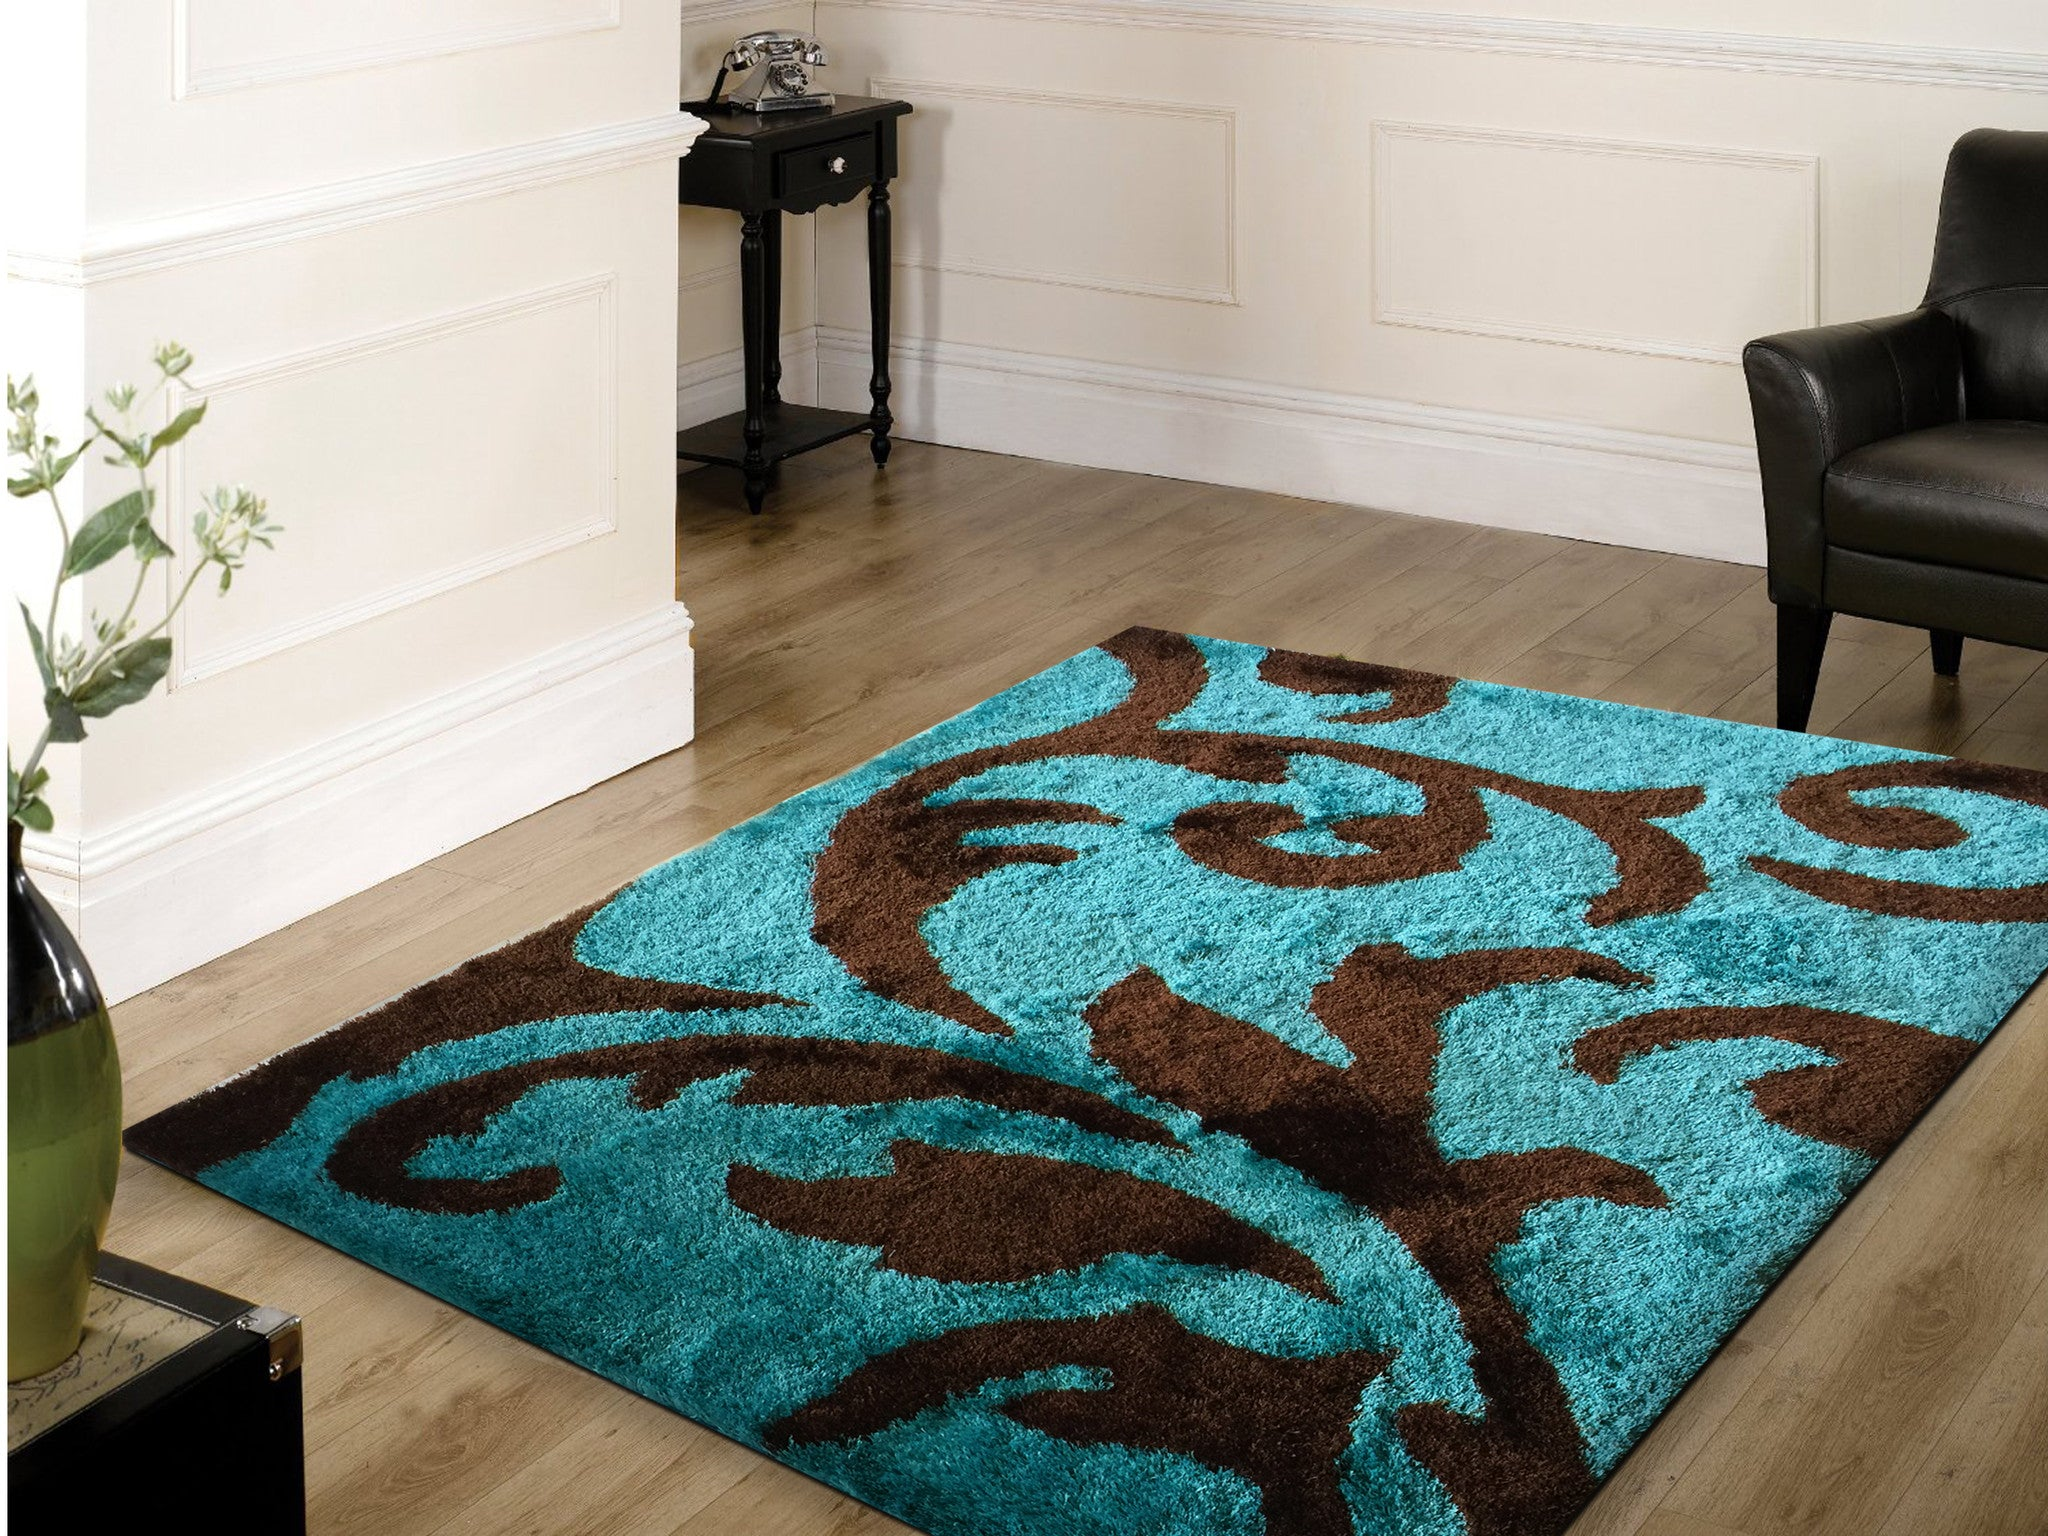 soft indoor bedroom shag area rug brown with turquoise 5u0027 ft x 7u0027 - Shag Area Rug